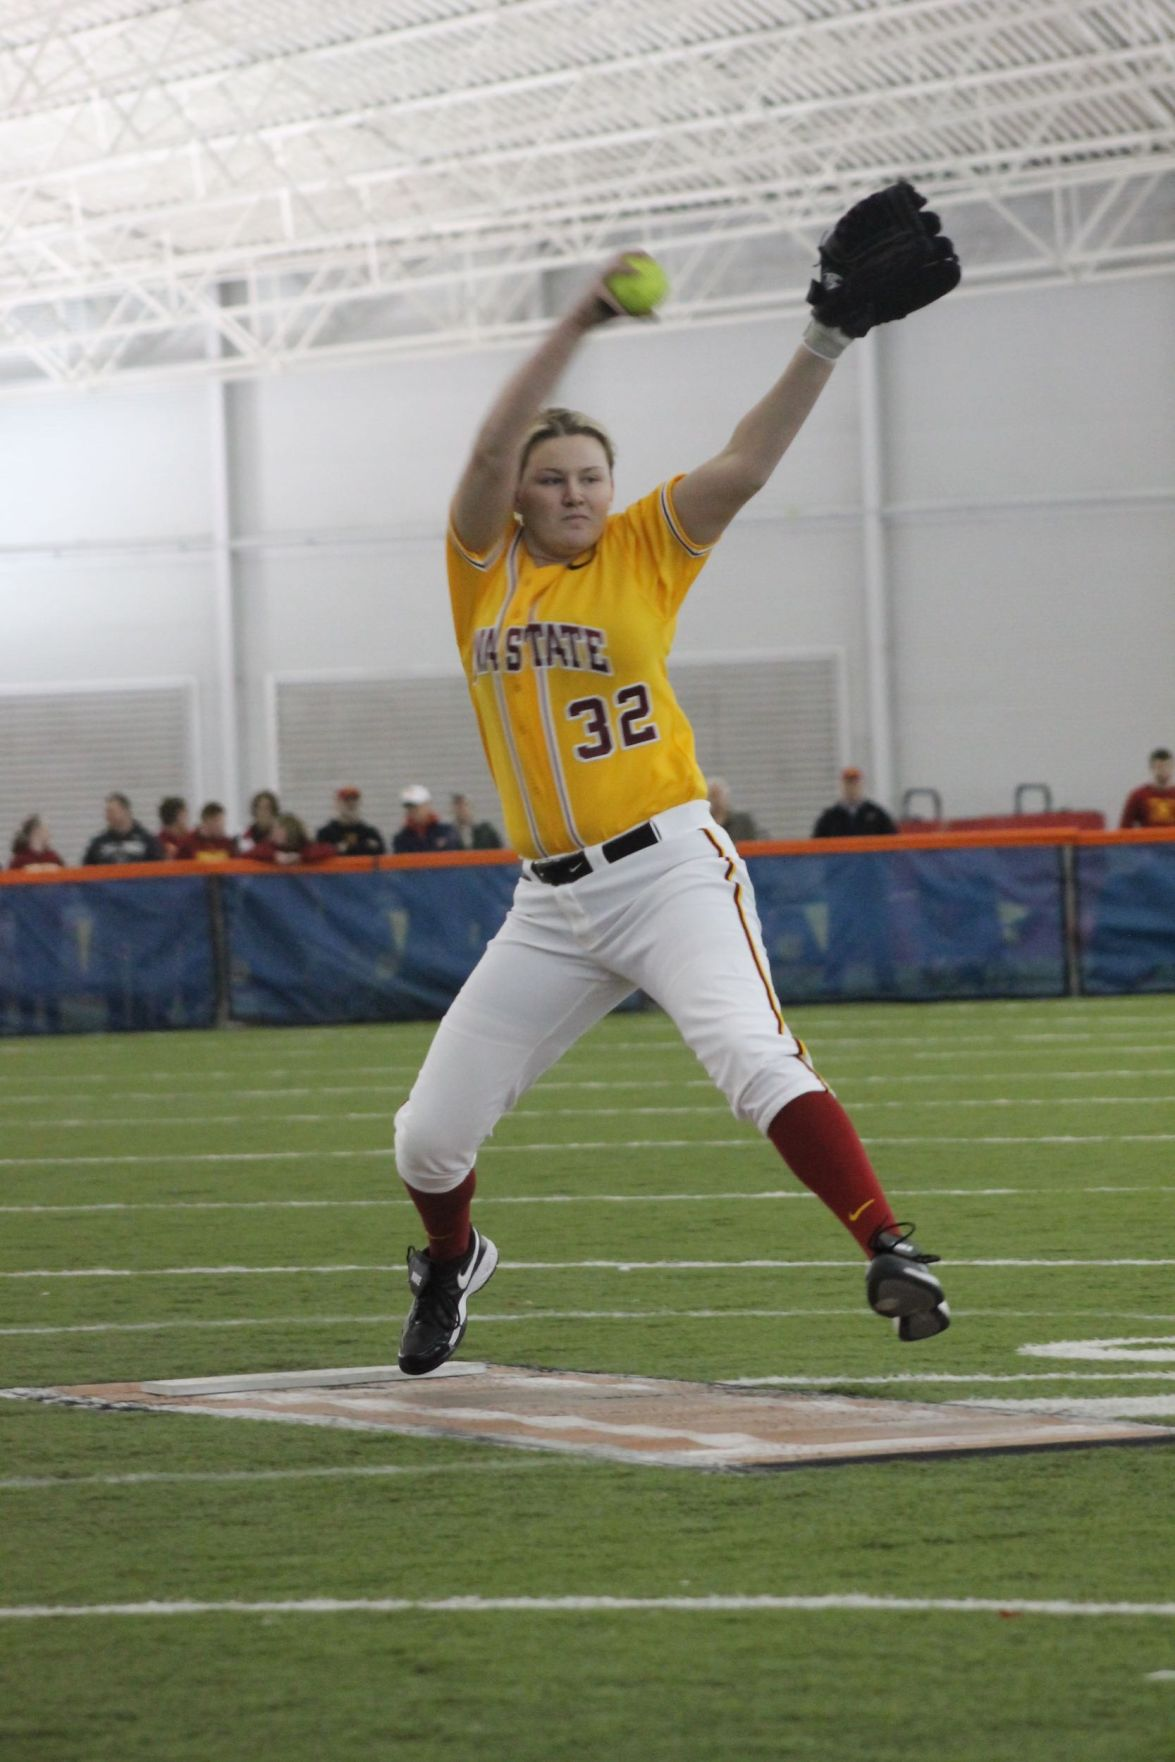 ISU softball beats SDSU 5-3